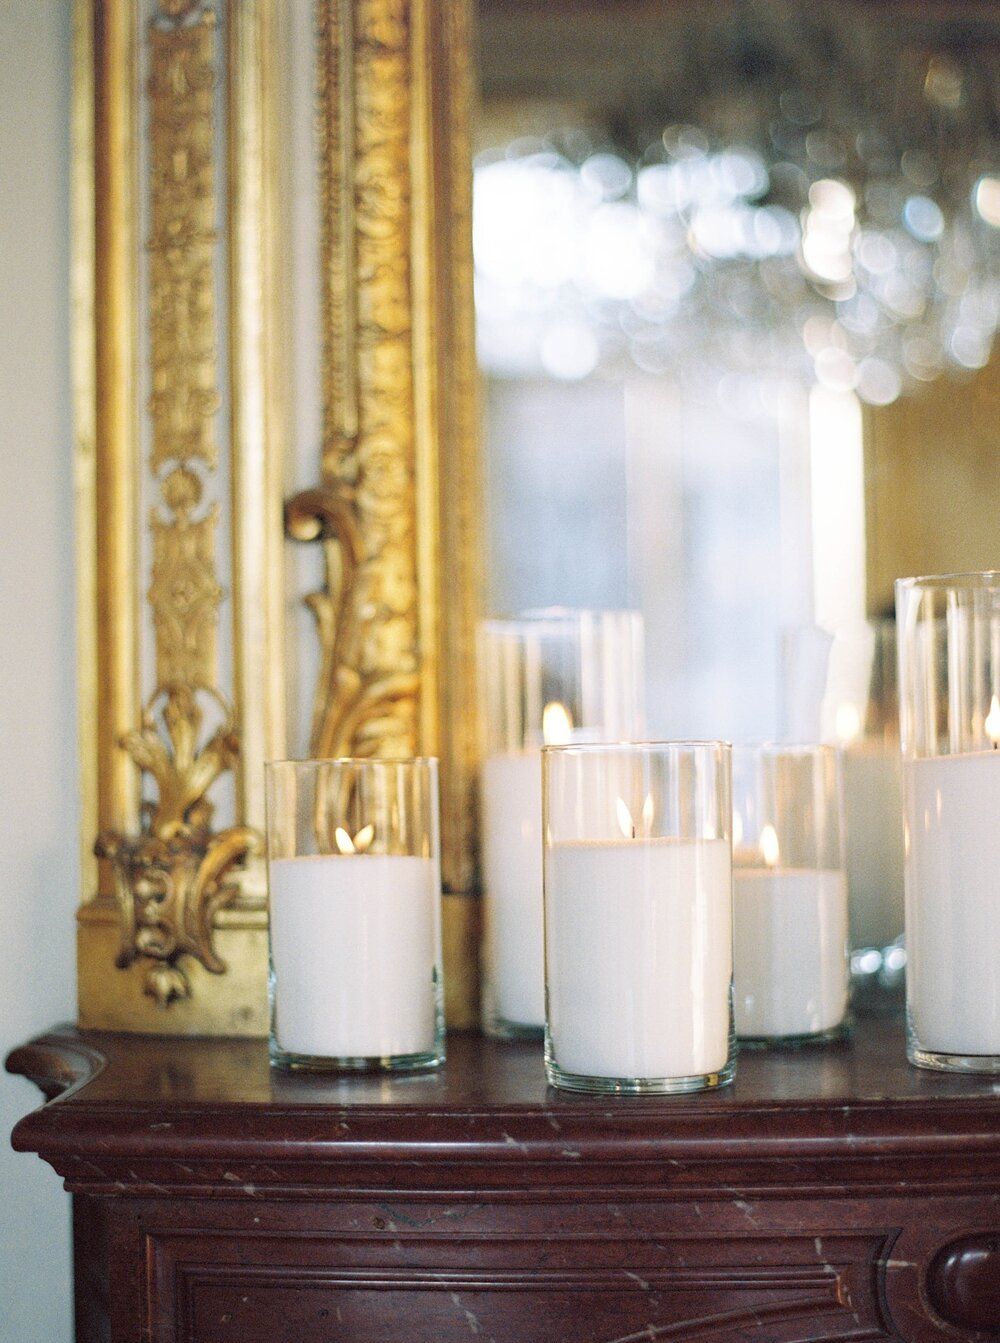 pillar candles on the mantlepiece in front of a gold gilded mirror